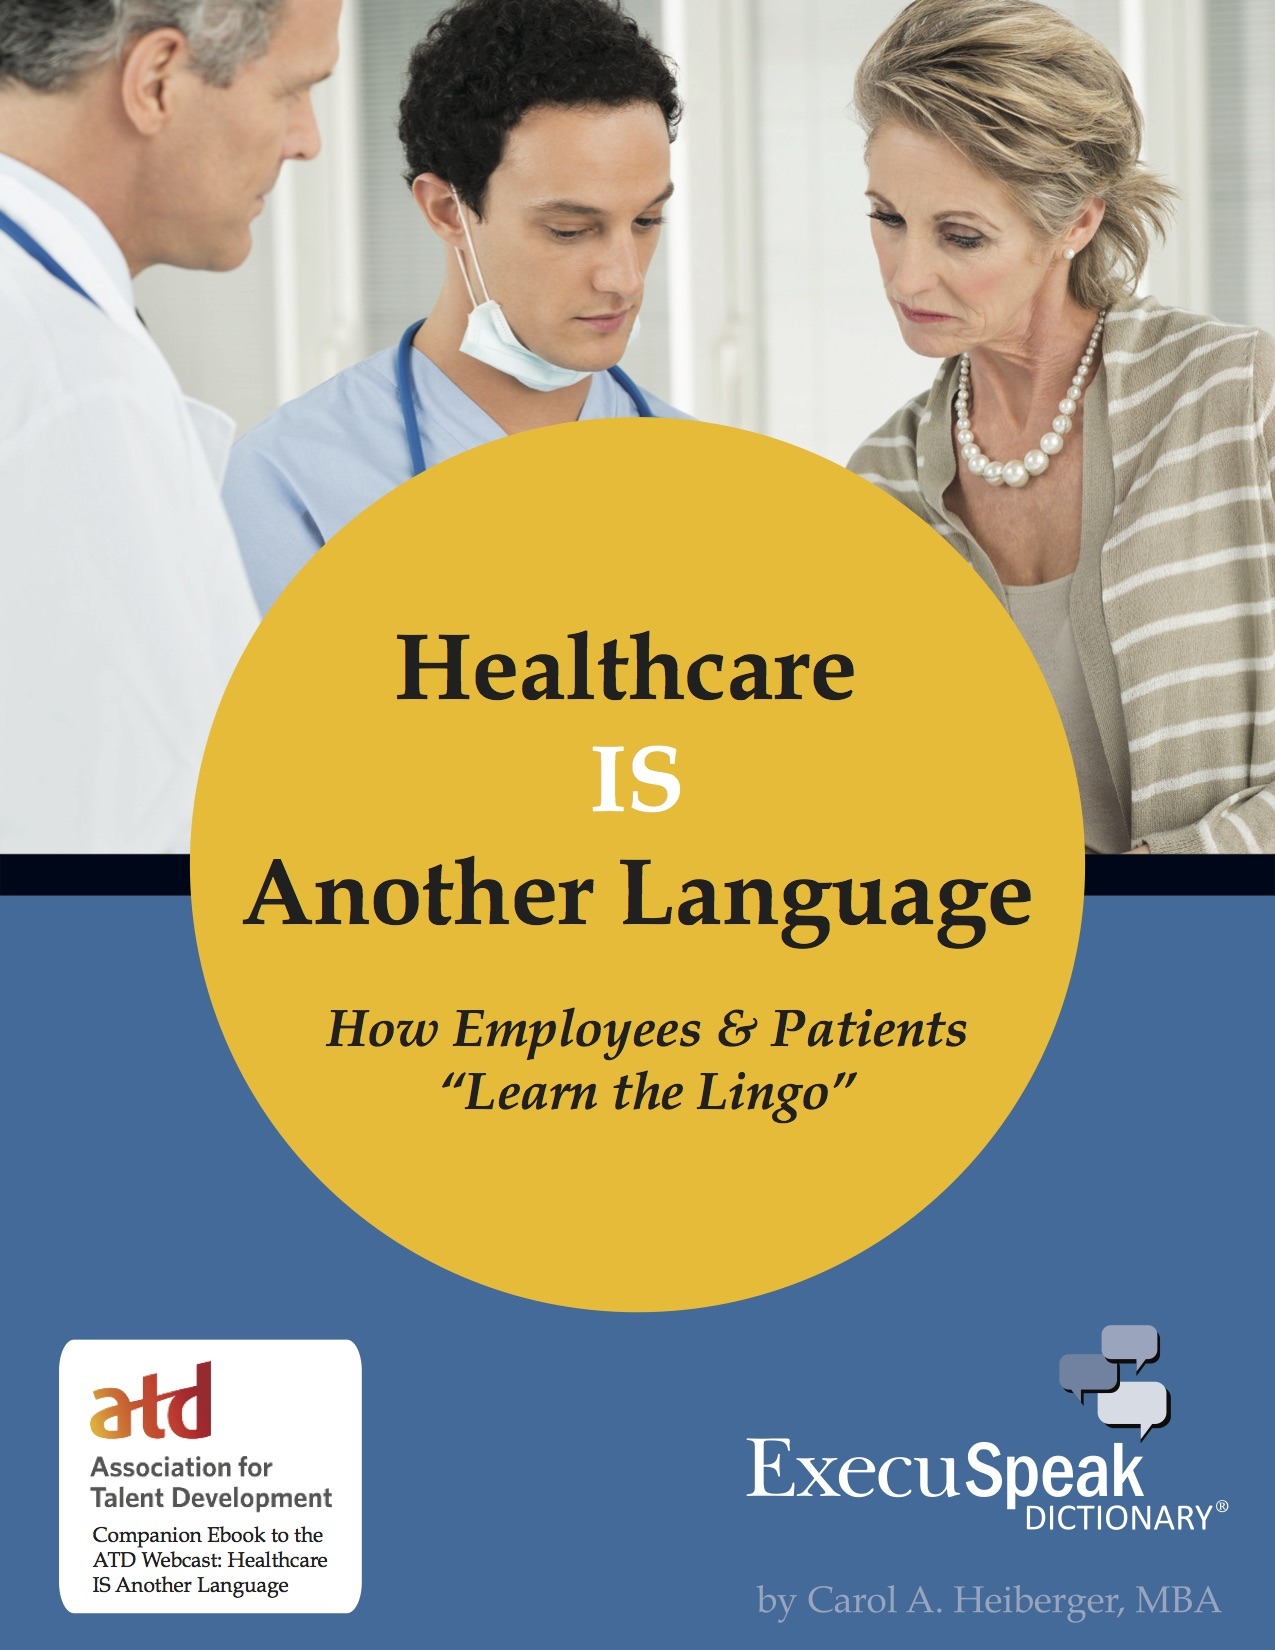 Healthcare IS Another Language